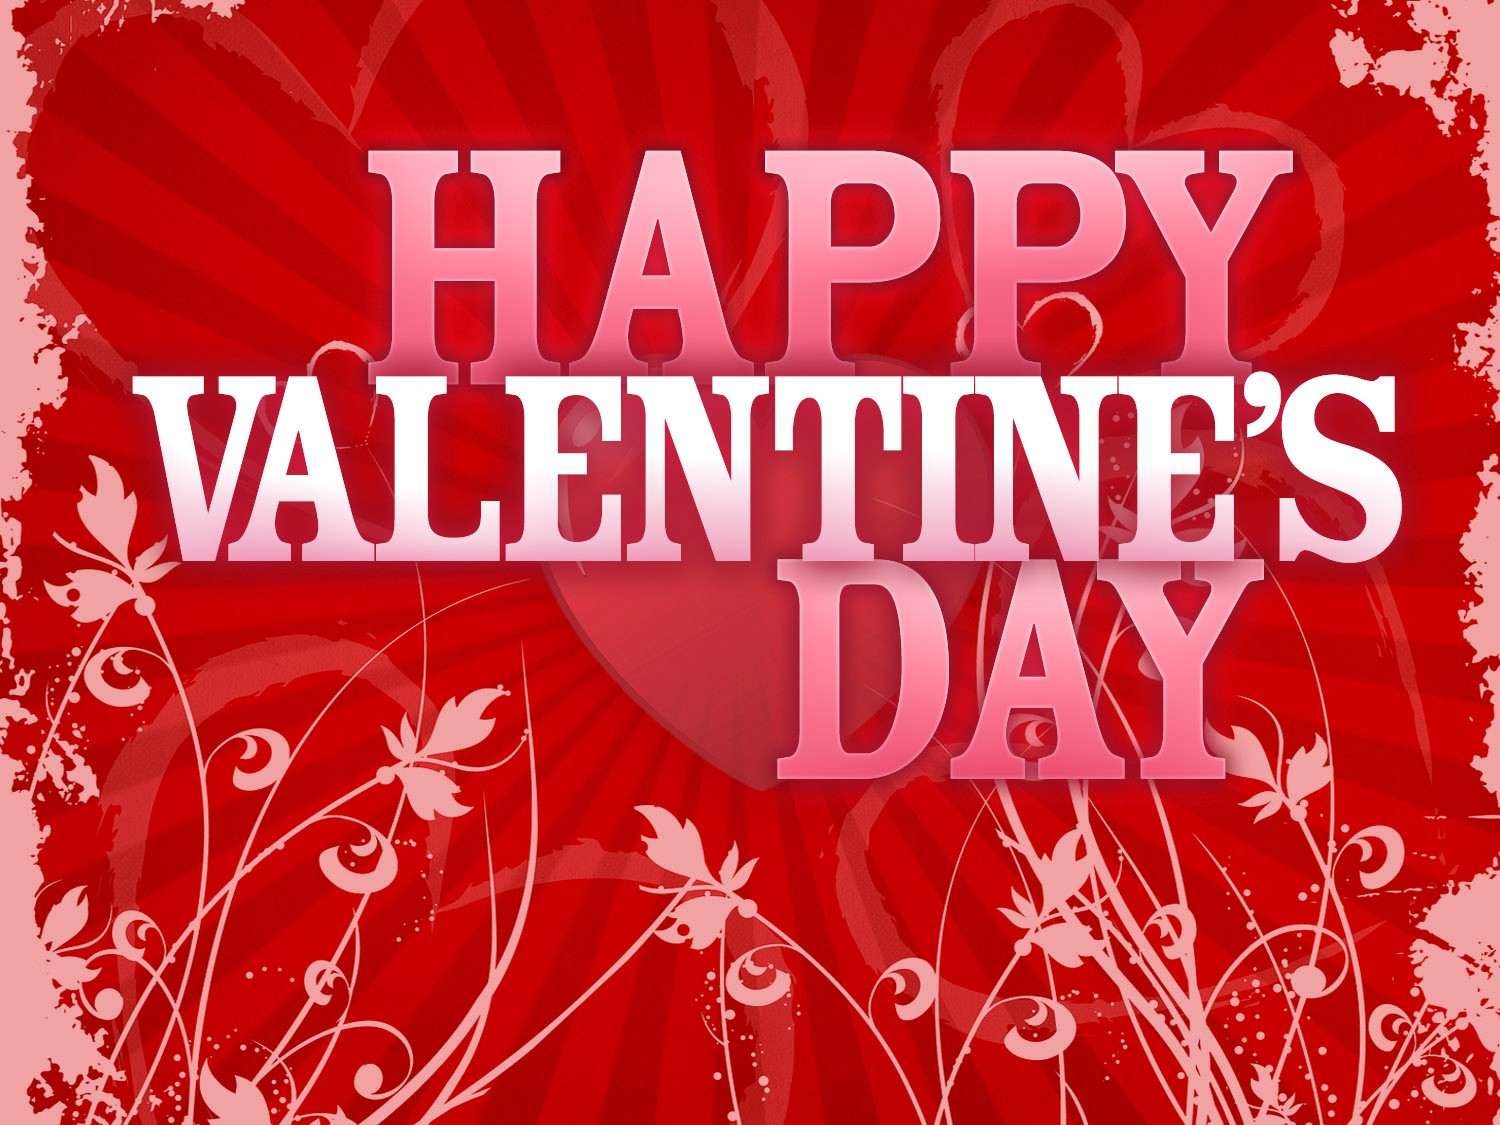 Sherri S Jubilee Happy Valentine S Day Everyone